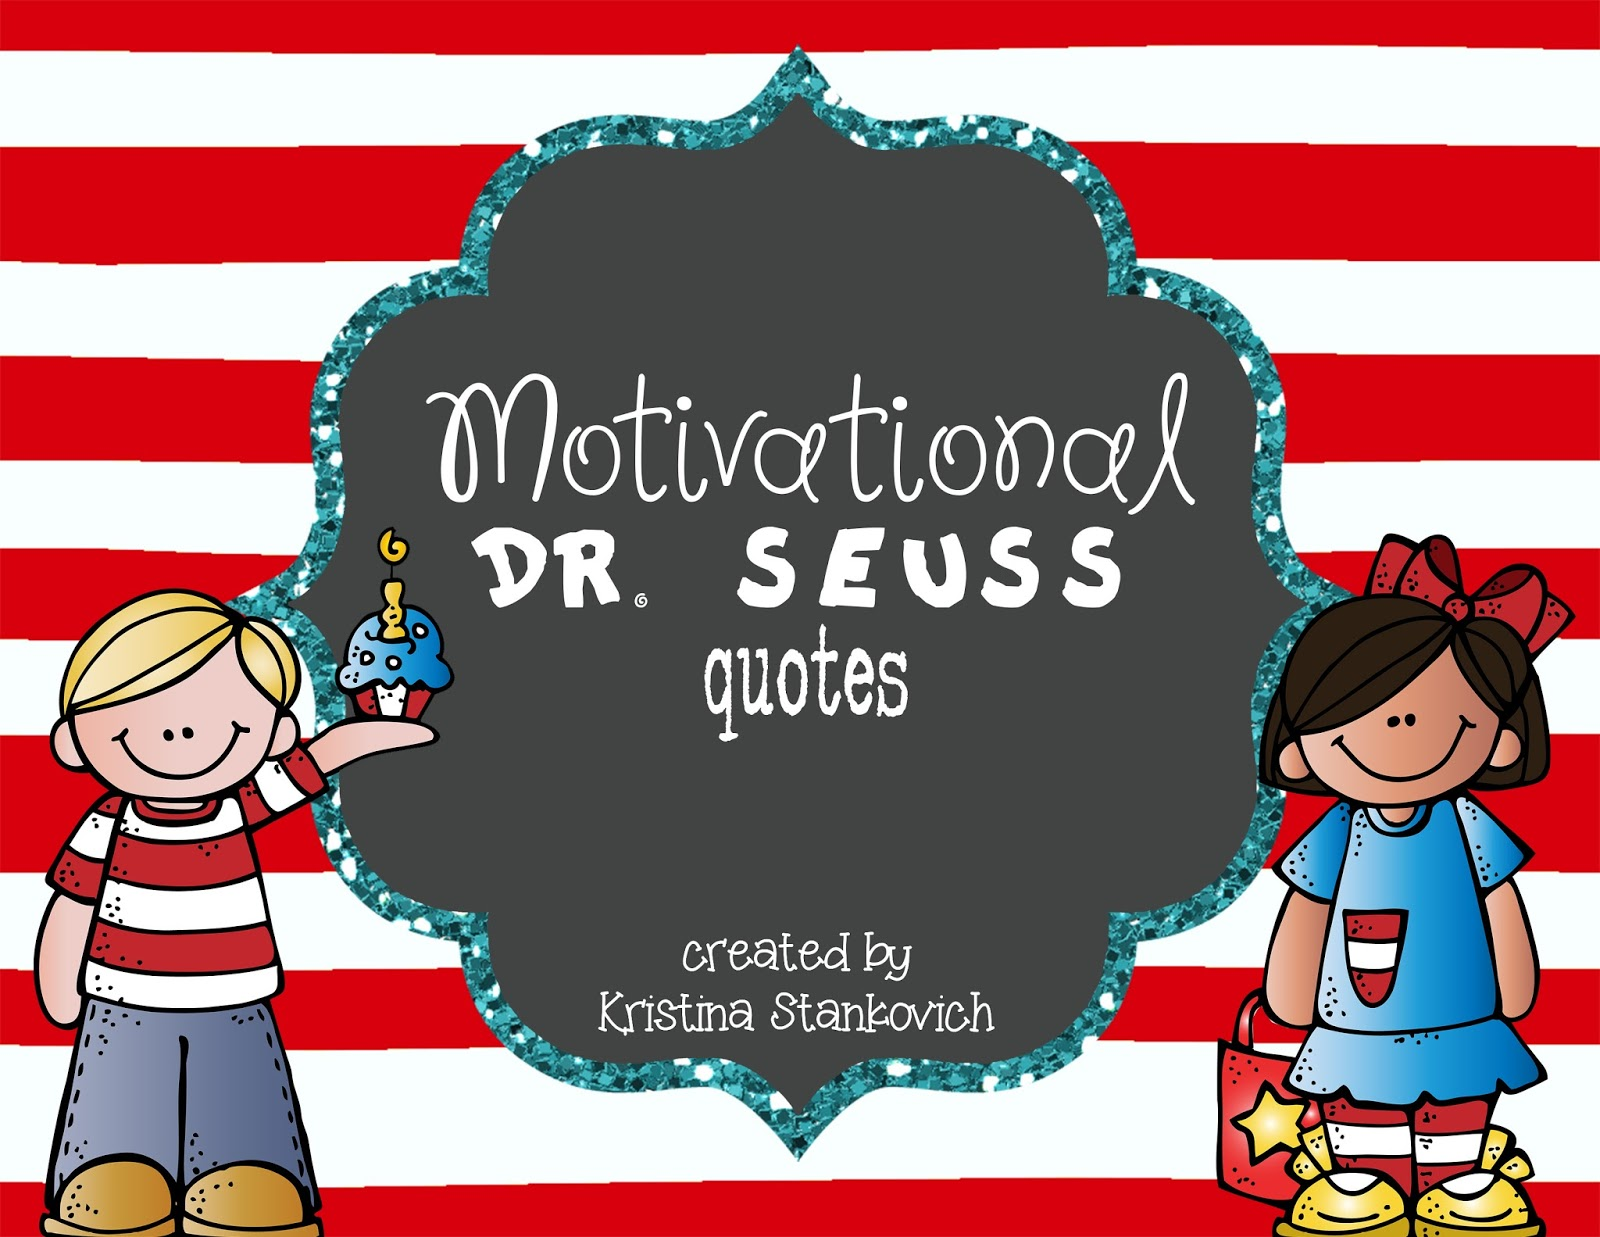 http://www.teacherspayteachers.com/Product/Motivational-Dr-Seuss-Quote-Poster-1143478